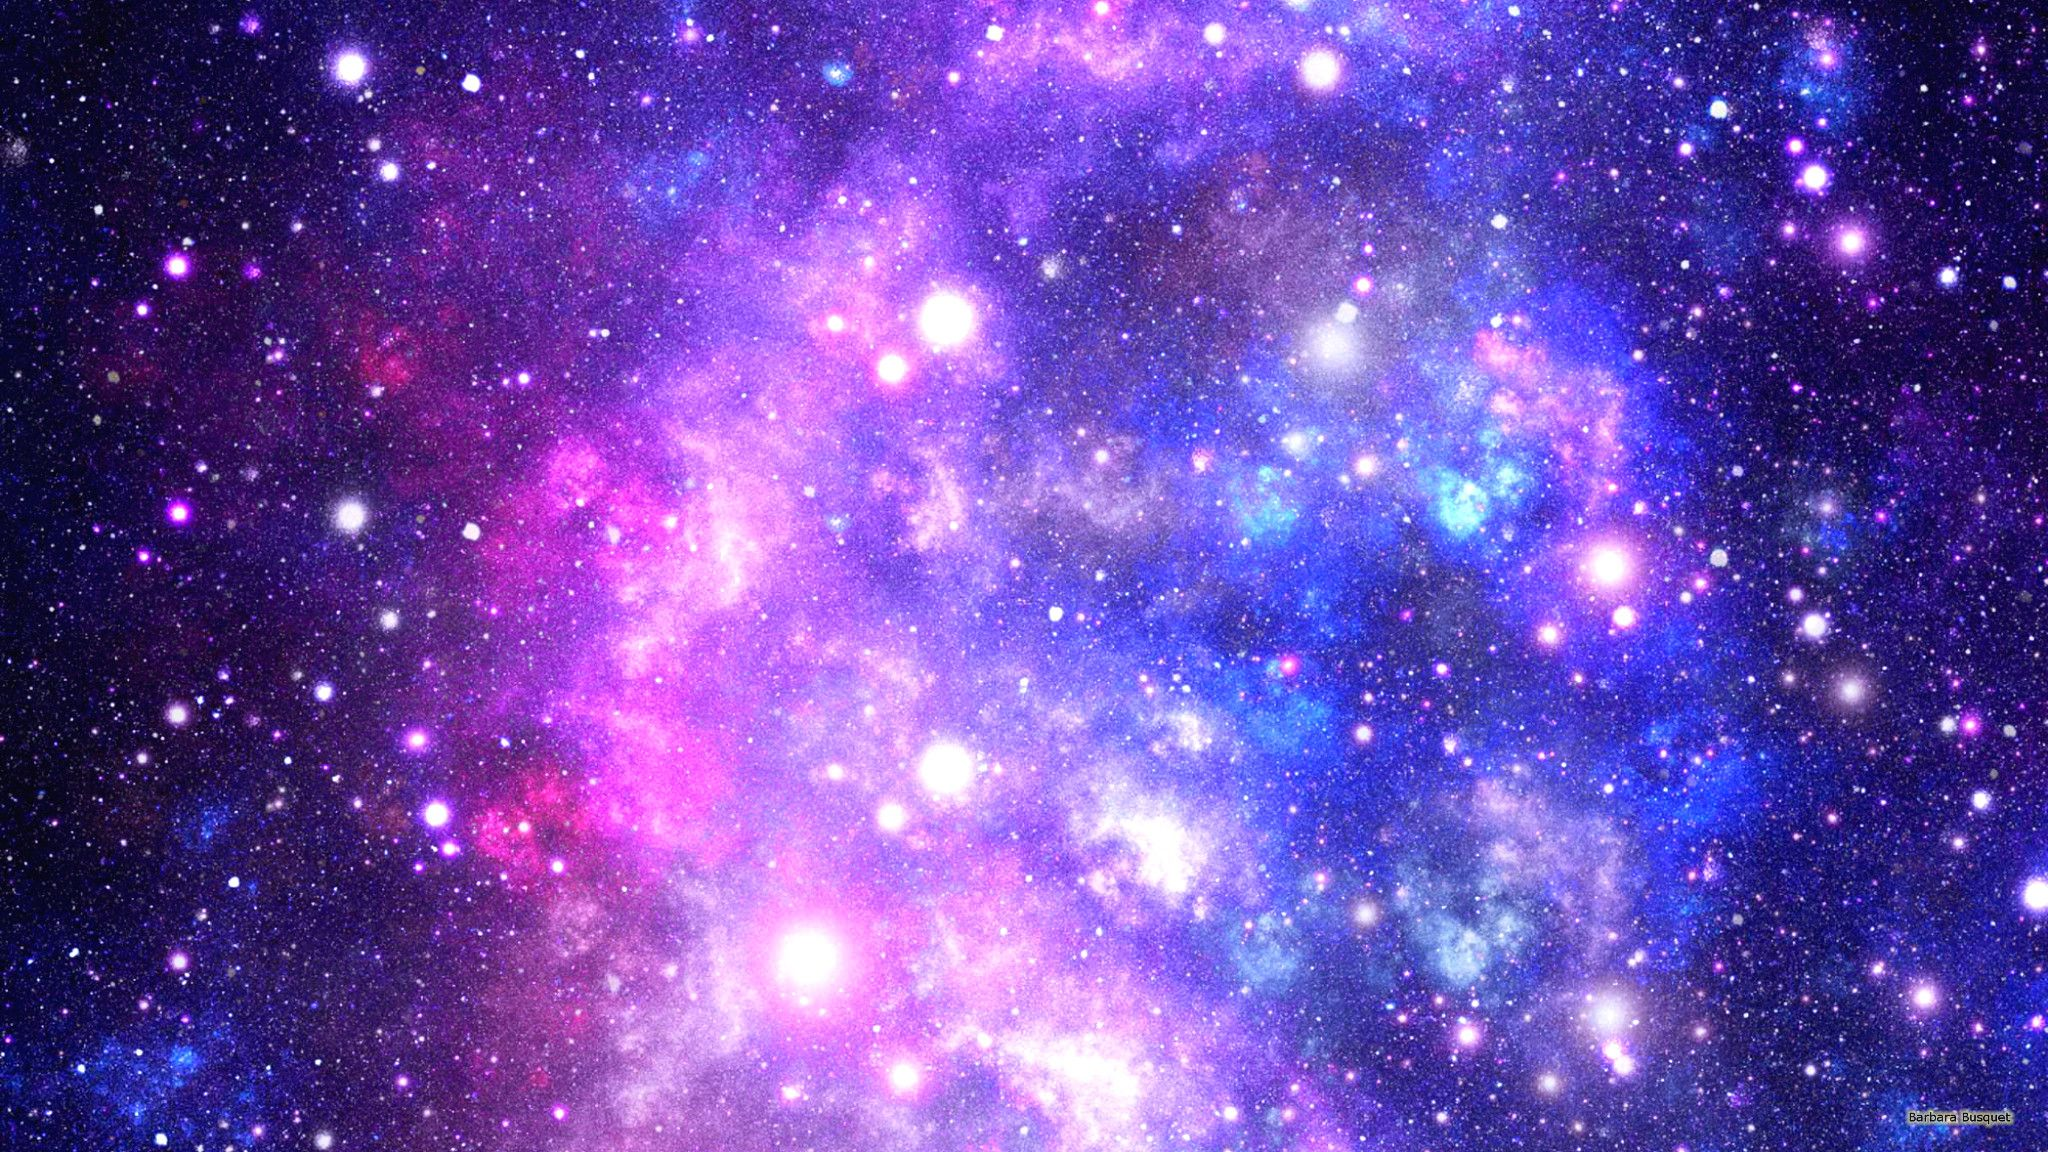 Galaxy Wallpaper 17 2048 X 1152 Stmednet In 2020 Blue